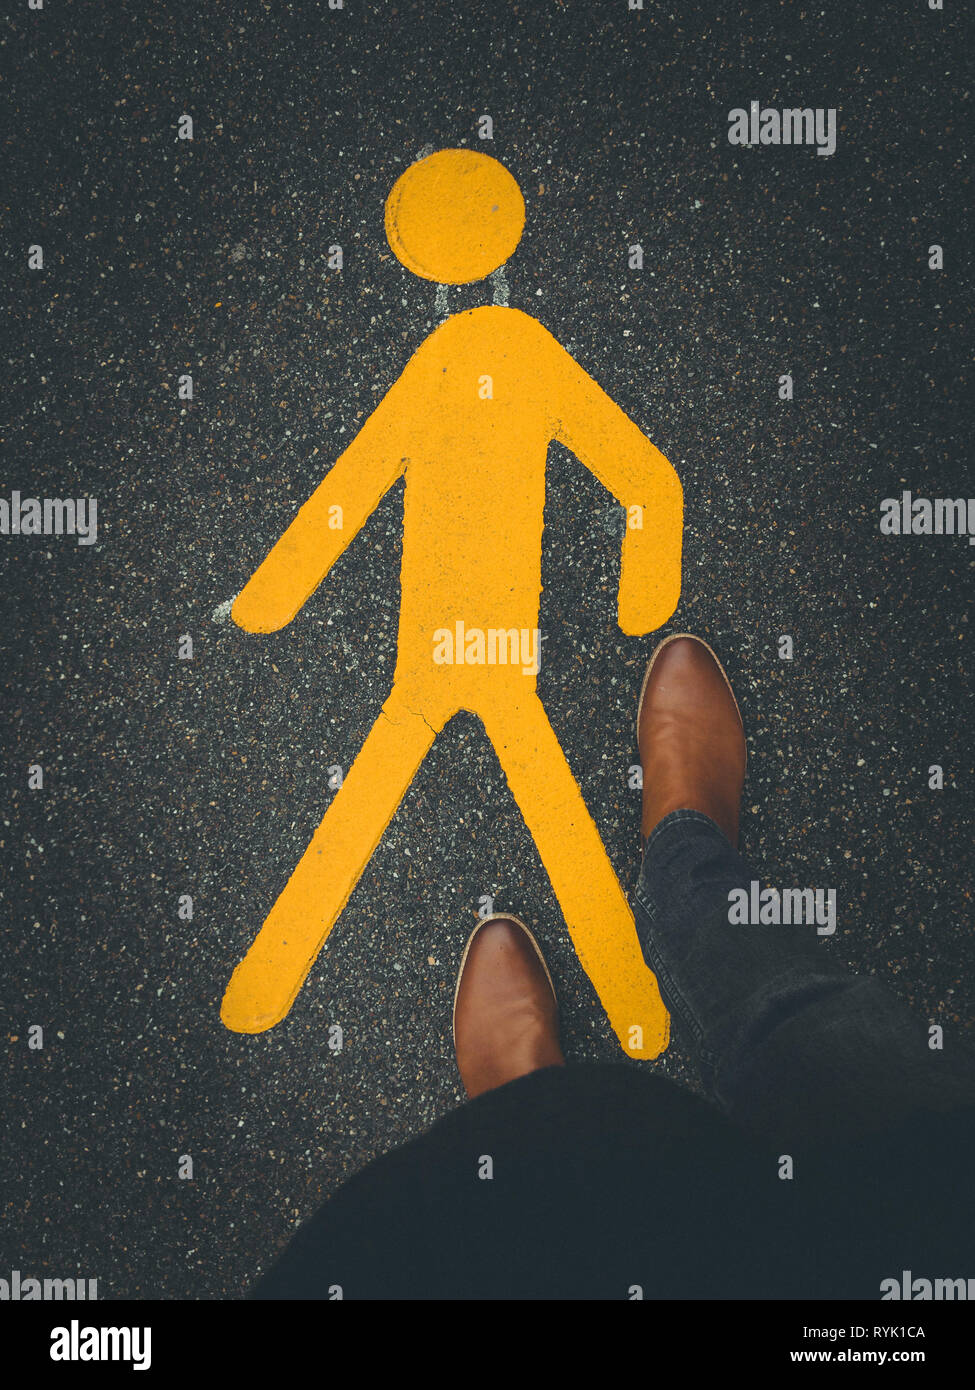 yellow pedestrian sign on pavement with feet - Stock Image